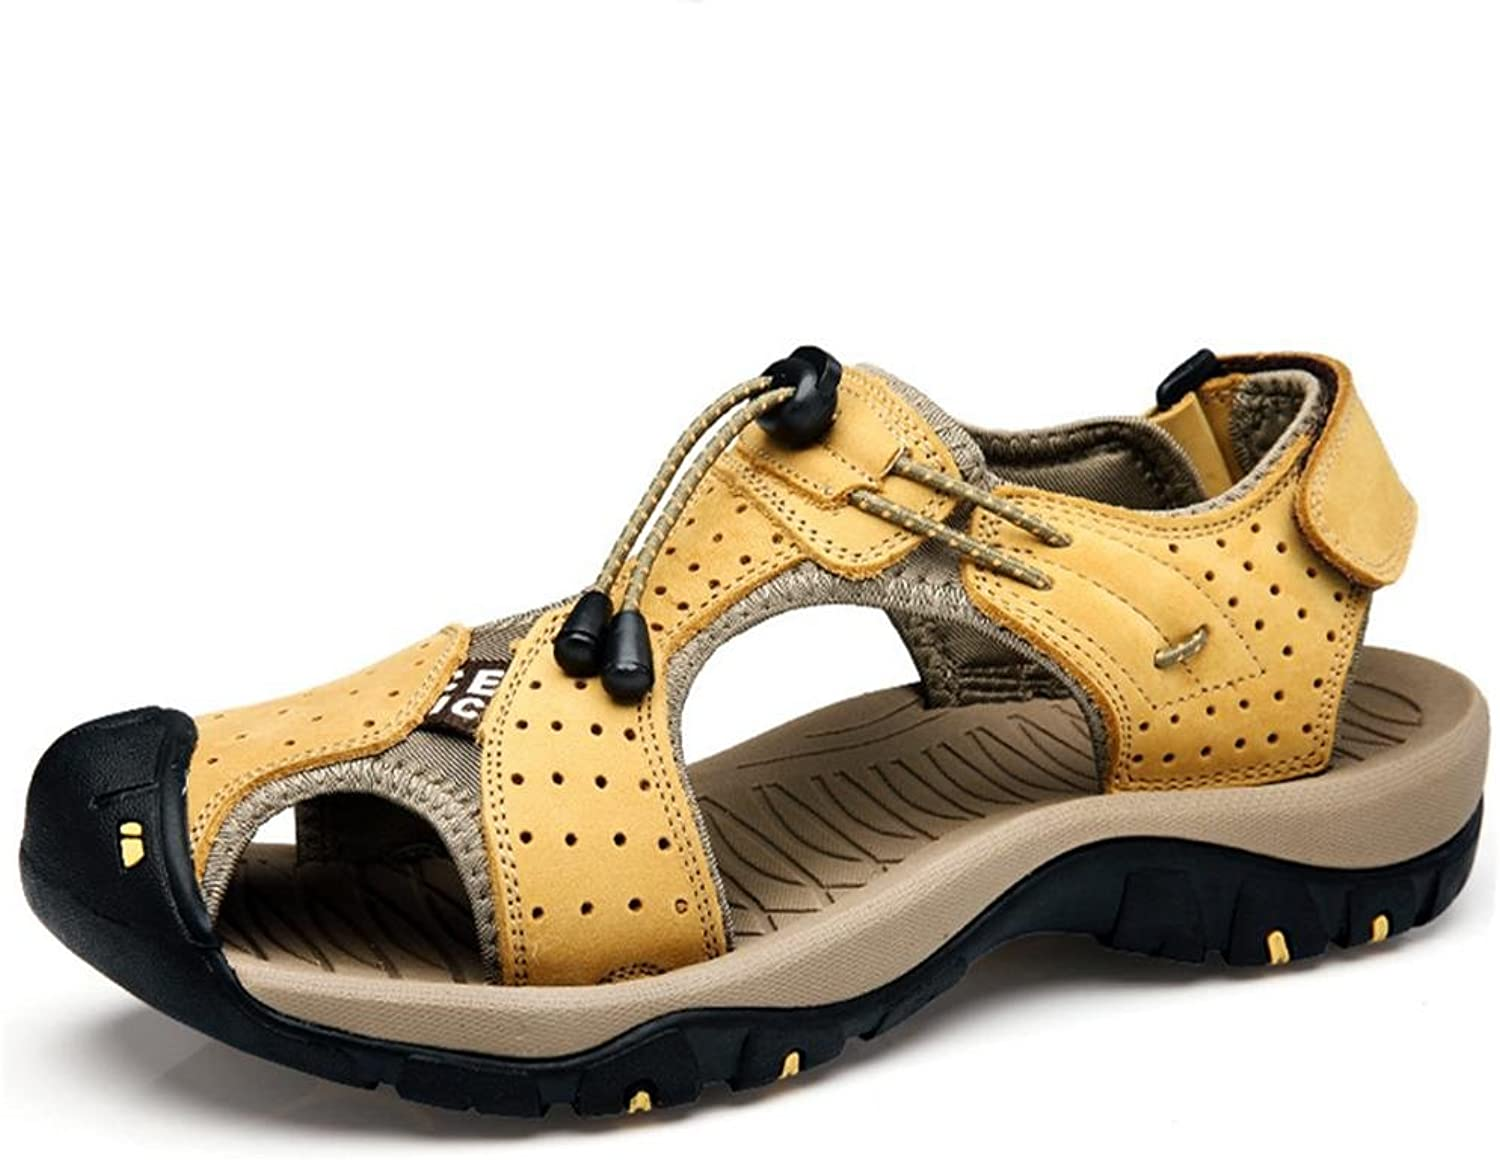 Brandon Christie Beach Leather Sandals for Men Package toe Soft Thick Non-slip Sole Velcro Durable Breathable Summer Sport Wading shoes